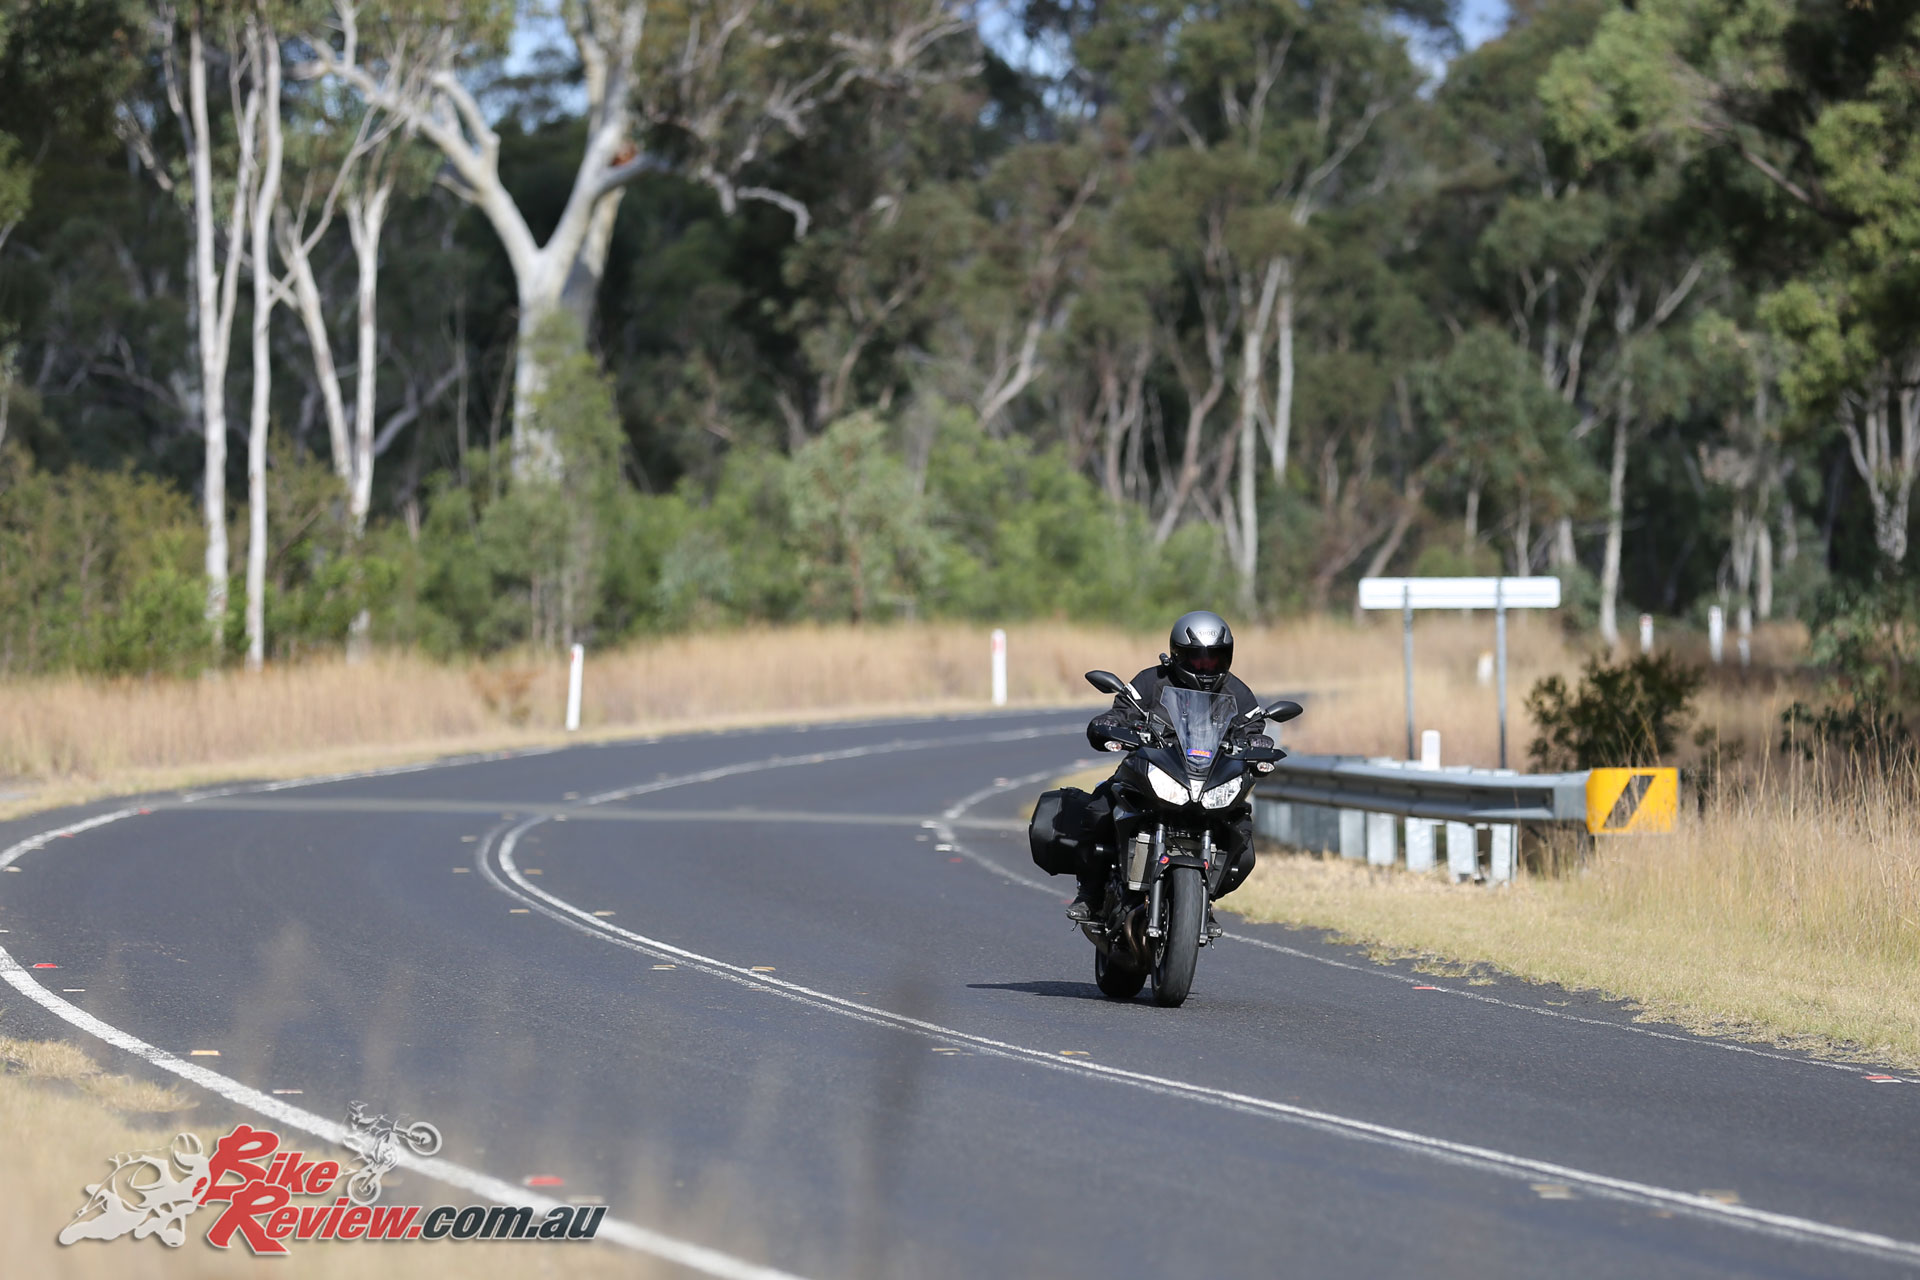 On the open road the MT-07 Tracer is everything you'd expect, comfortable, well damped, a little restrained compared to a sportsbike, but still offering good strong performance.